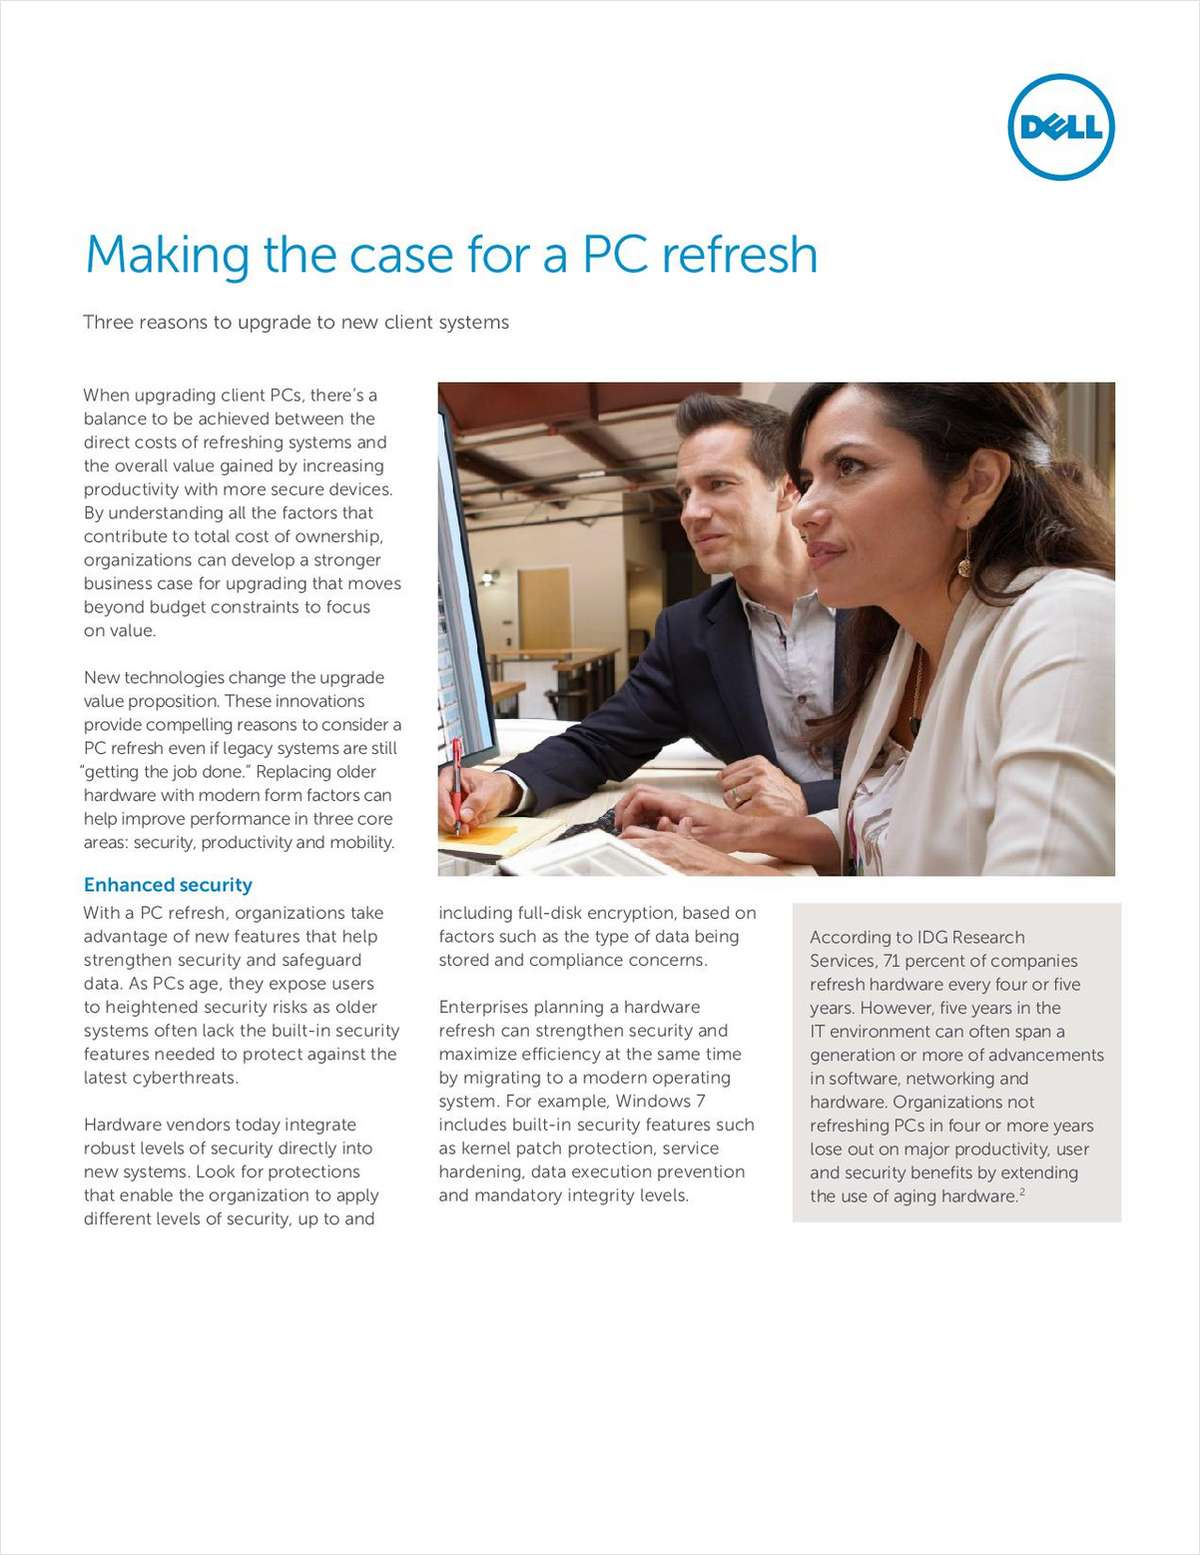 Making the Case for a PC Refresh - Three Reasons to Upgrade to New Client Systems Screenshot